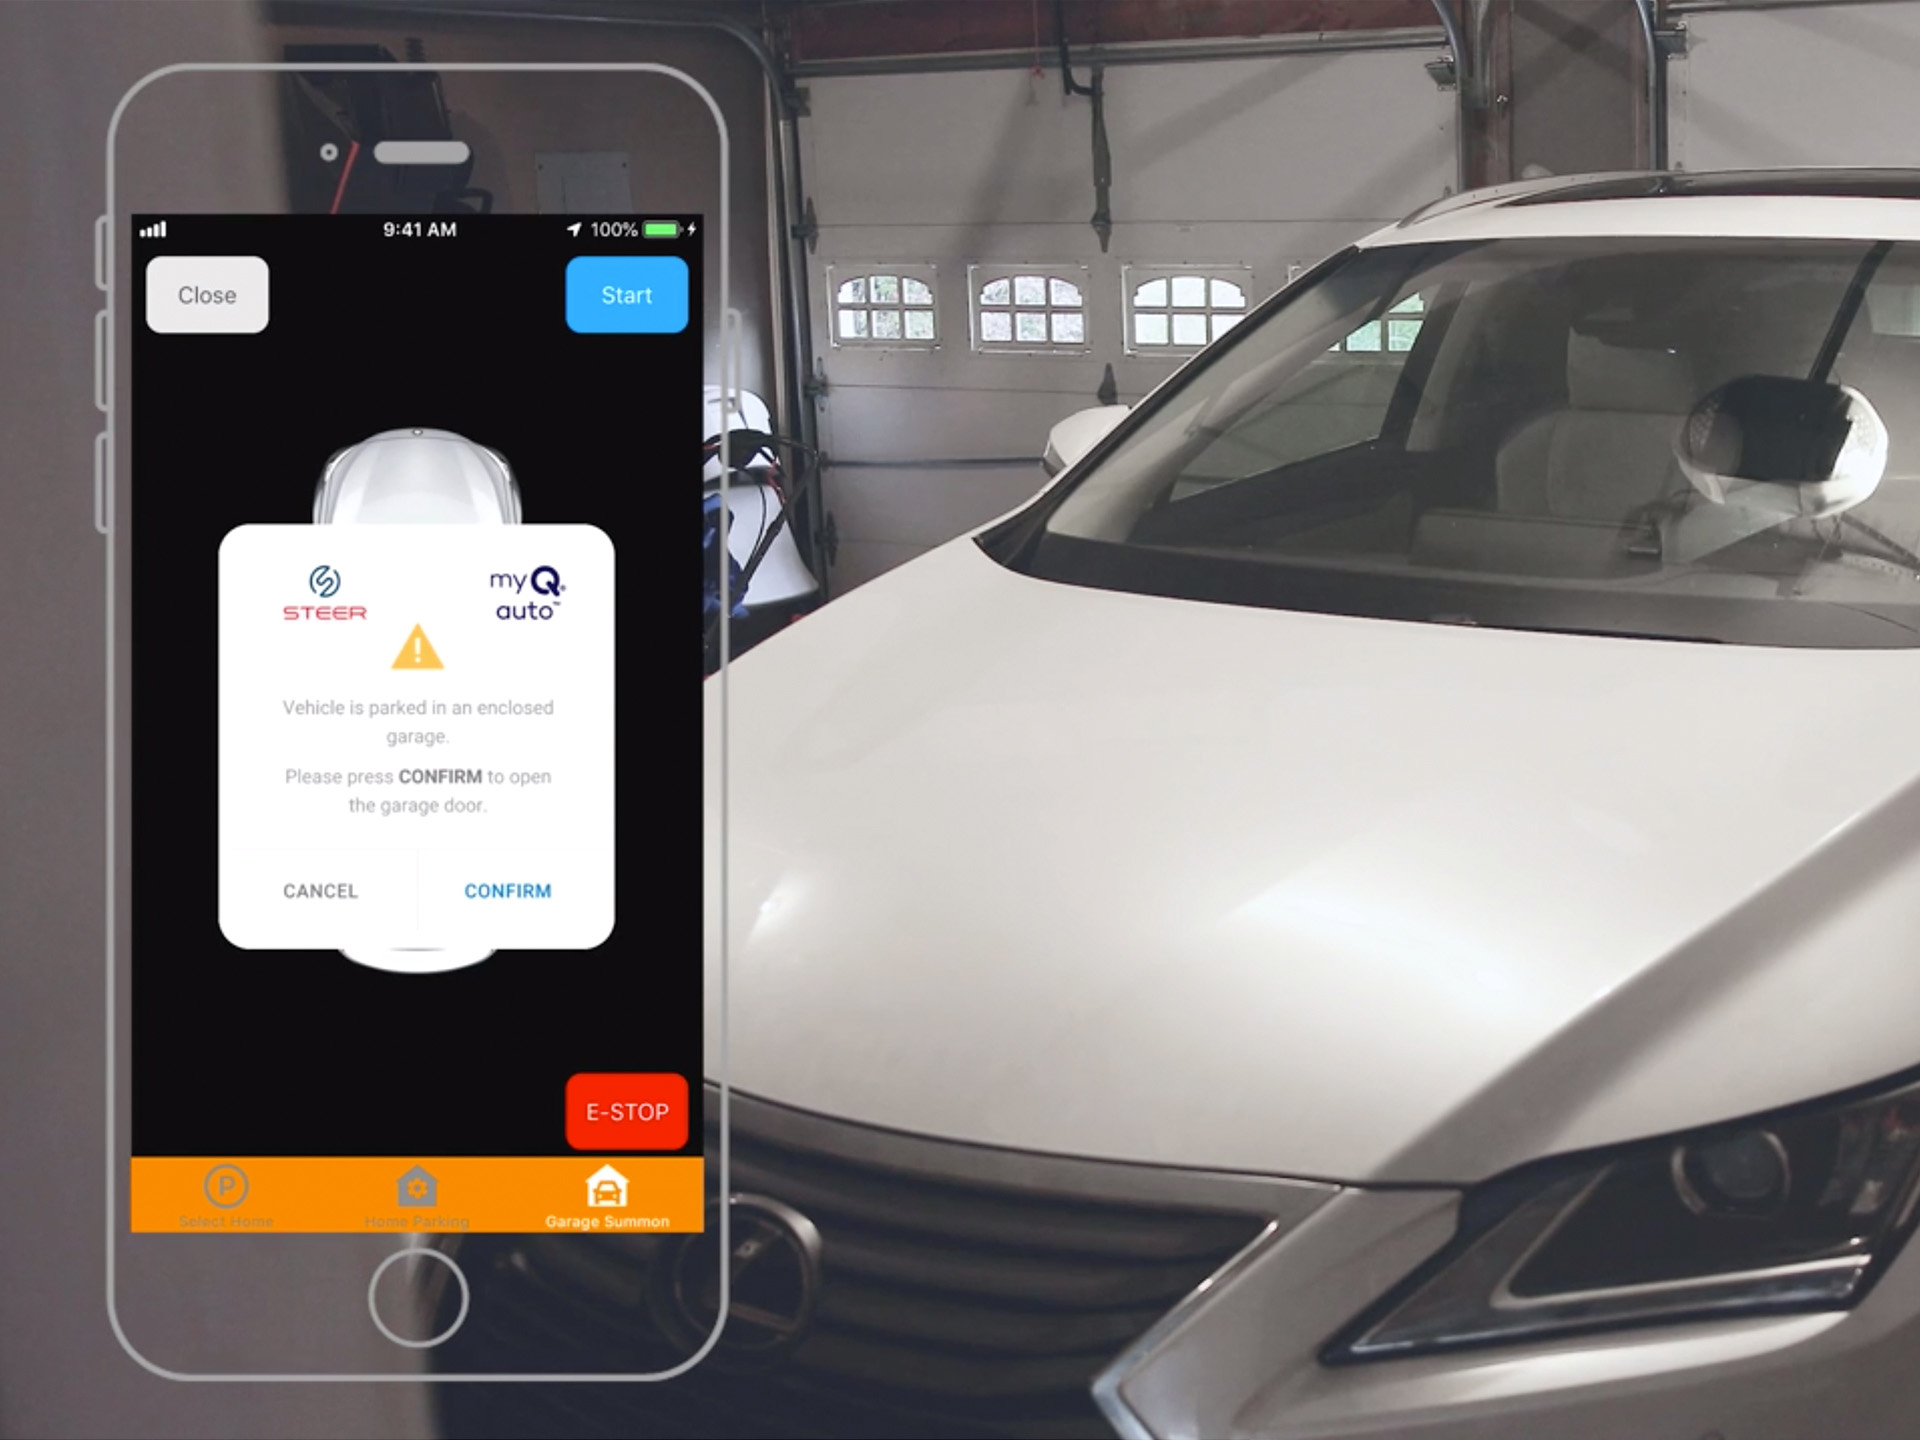 The myQ Safe Remote Start™ feature sends an automatic alert to the car owner through the STEER app letting them know it is unsafe to start the car and prompts the owner to open the garage door.